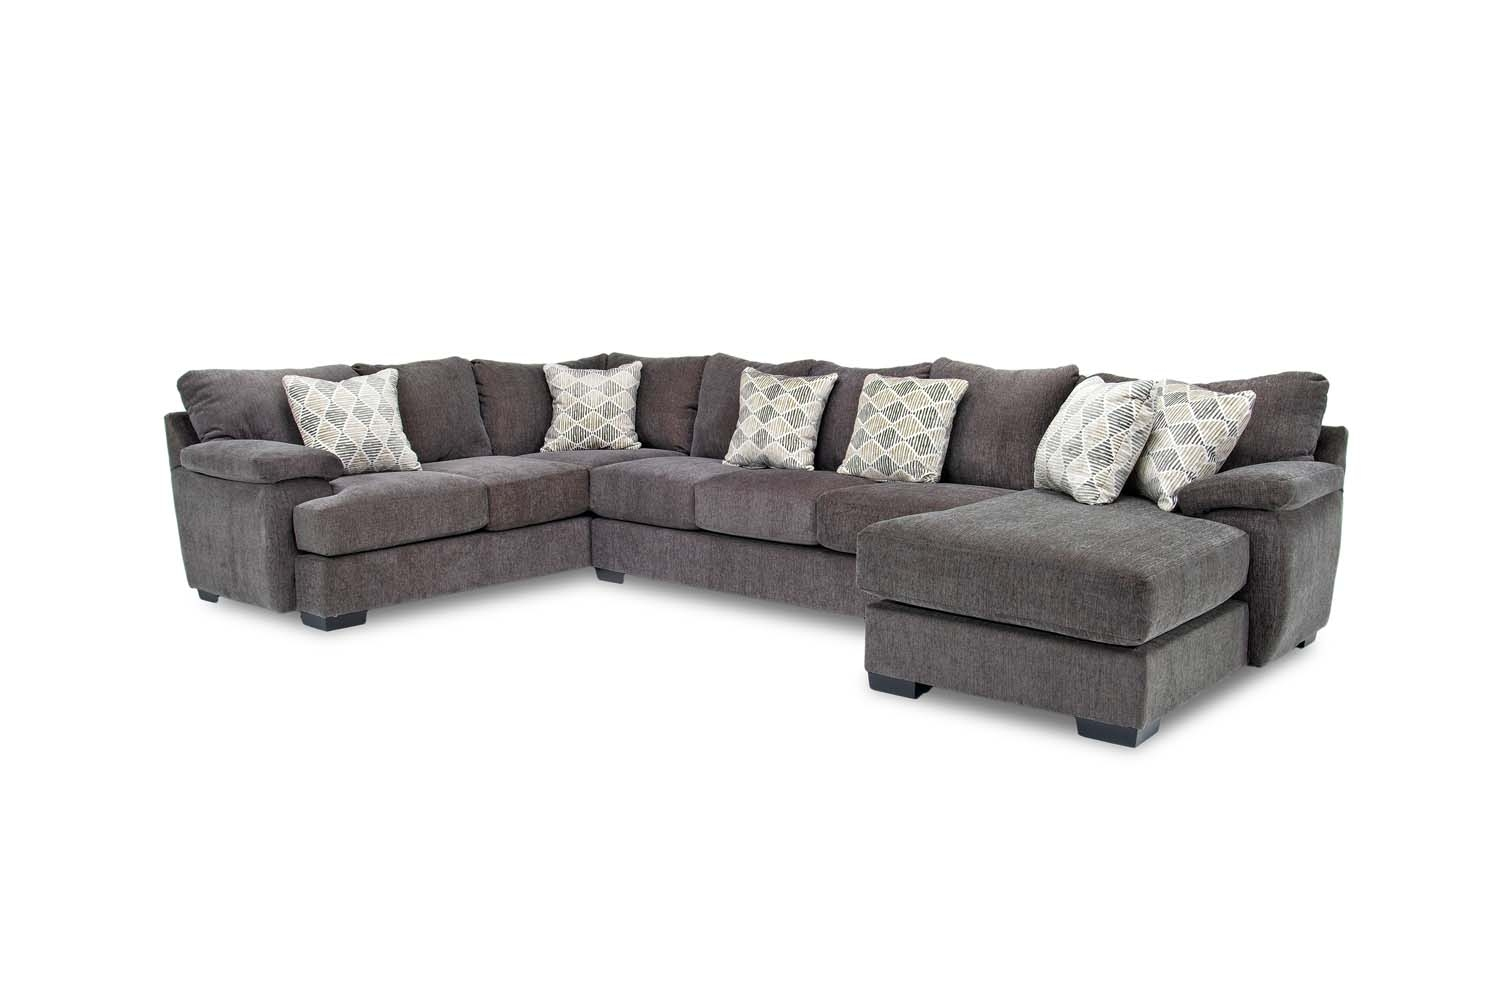 Superb Sectional Couches Sofas Mor Furniture Gmtry Best Dining Table And Chair Ideas Images Gmtryco